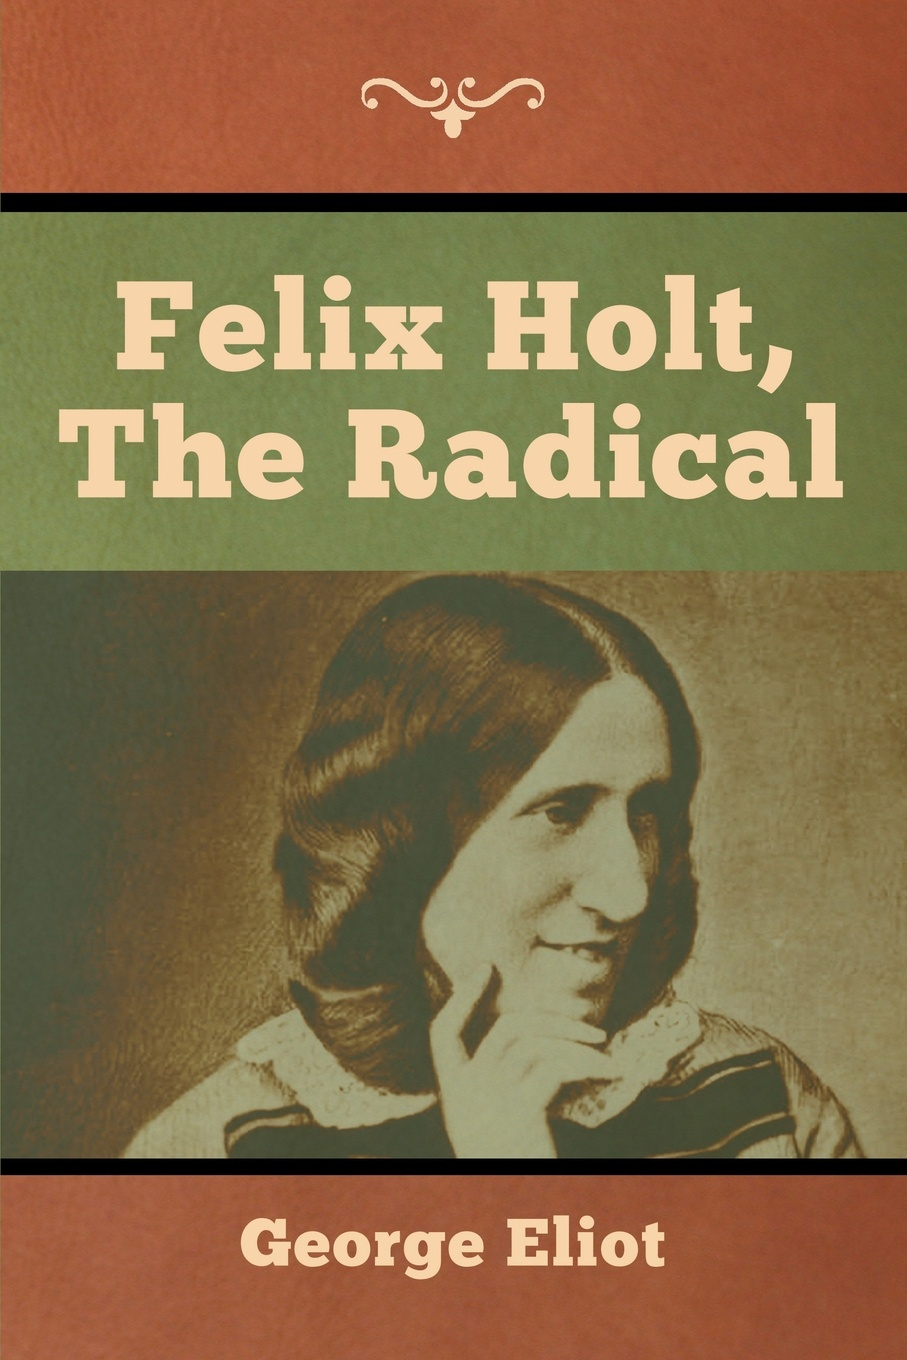 George Eliot Felix Holt, the Radical felix j palma the map of time and the turn of the screw